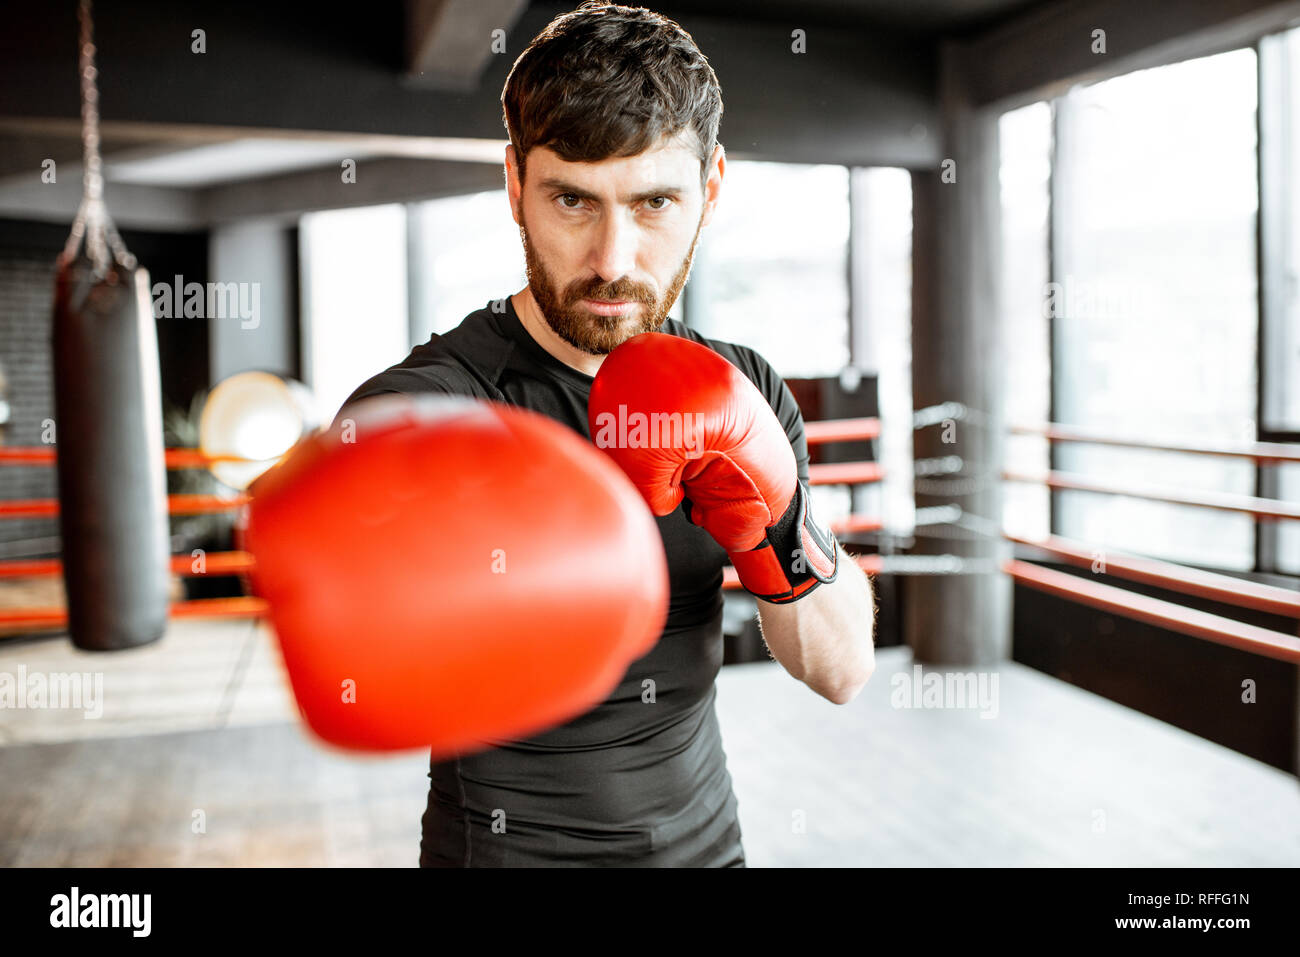 Portrait of an athletic man as a boxer in red boxing gloves on the fighting ring at the gym - Stock Image